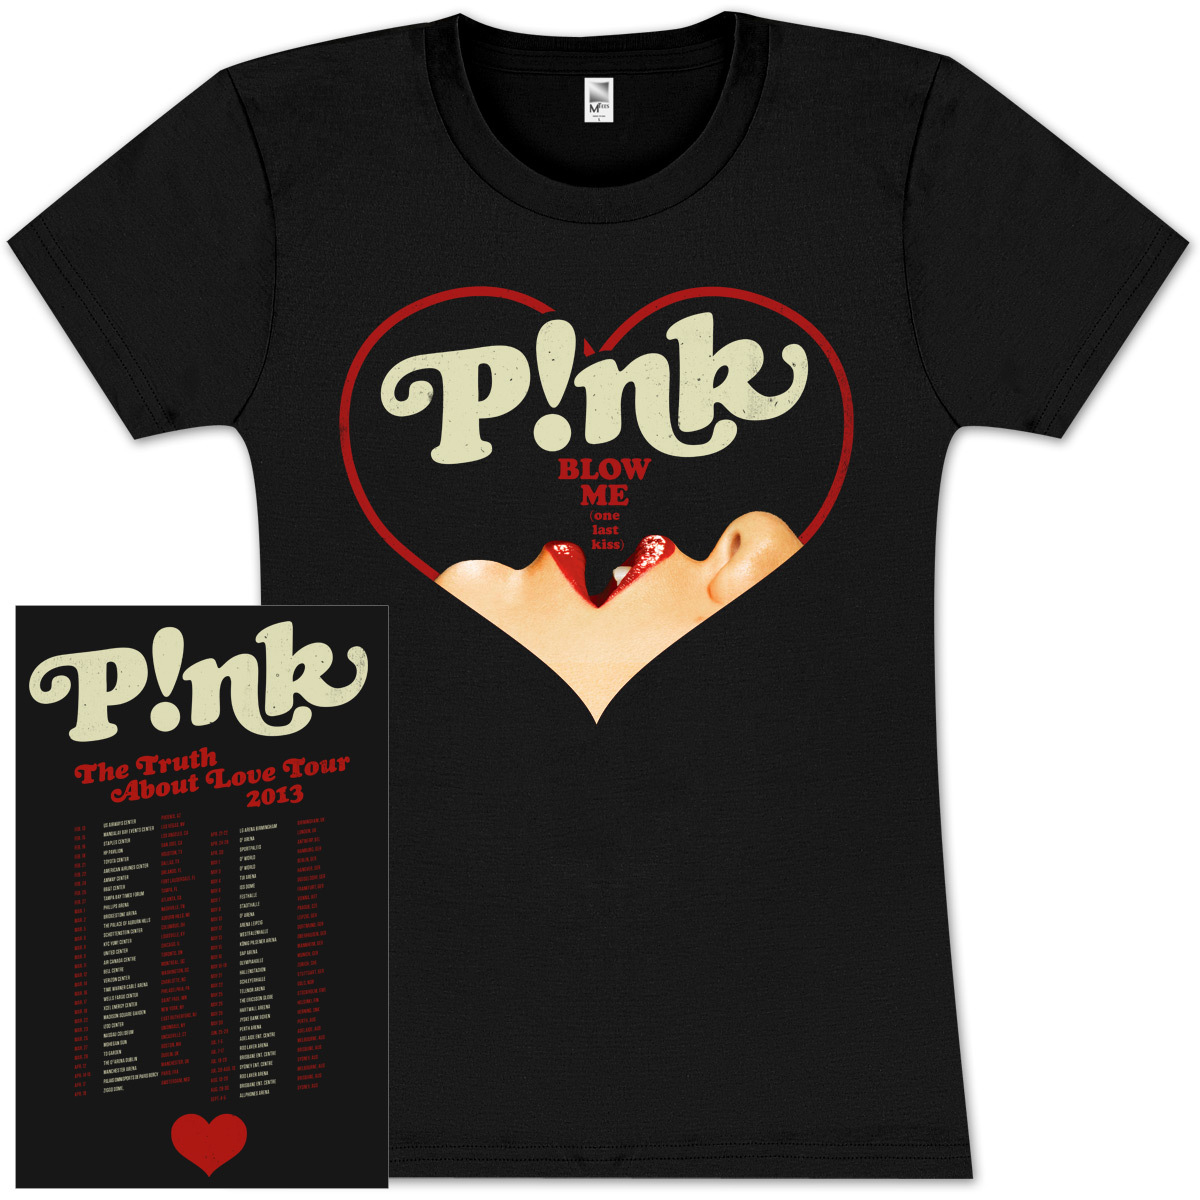 P!nk Blow Heart Jr Tour T-Shirt